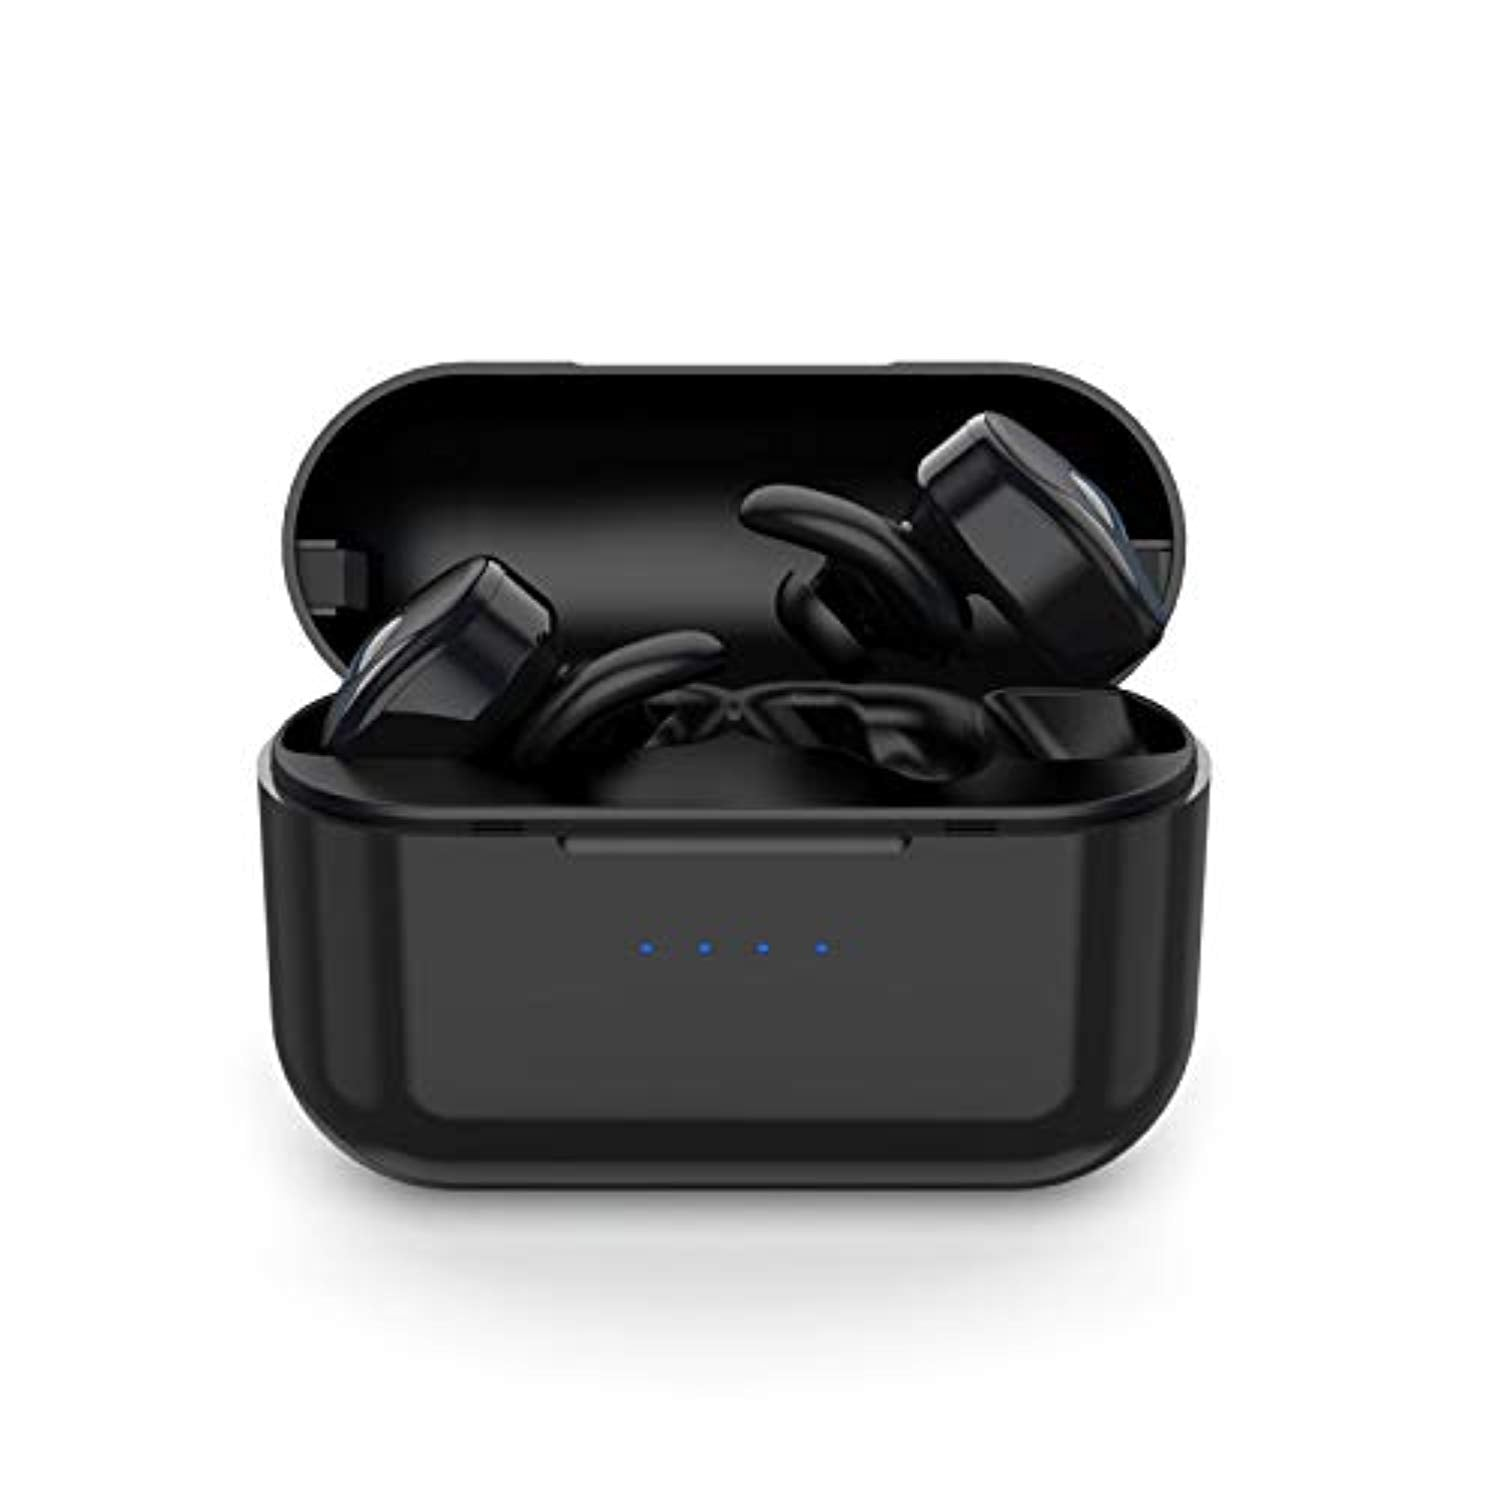 True Wireless Earbuds, Parihy Wireless Bluetooth Earphones Mini Sports Headphones, Deep Bass Sweat-proof Stereo Sound with Built-in Microphone and Charging Box for Running Exercise